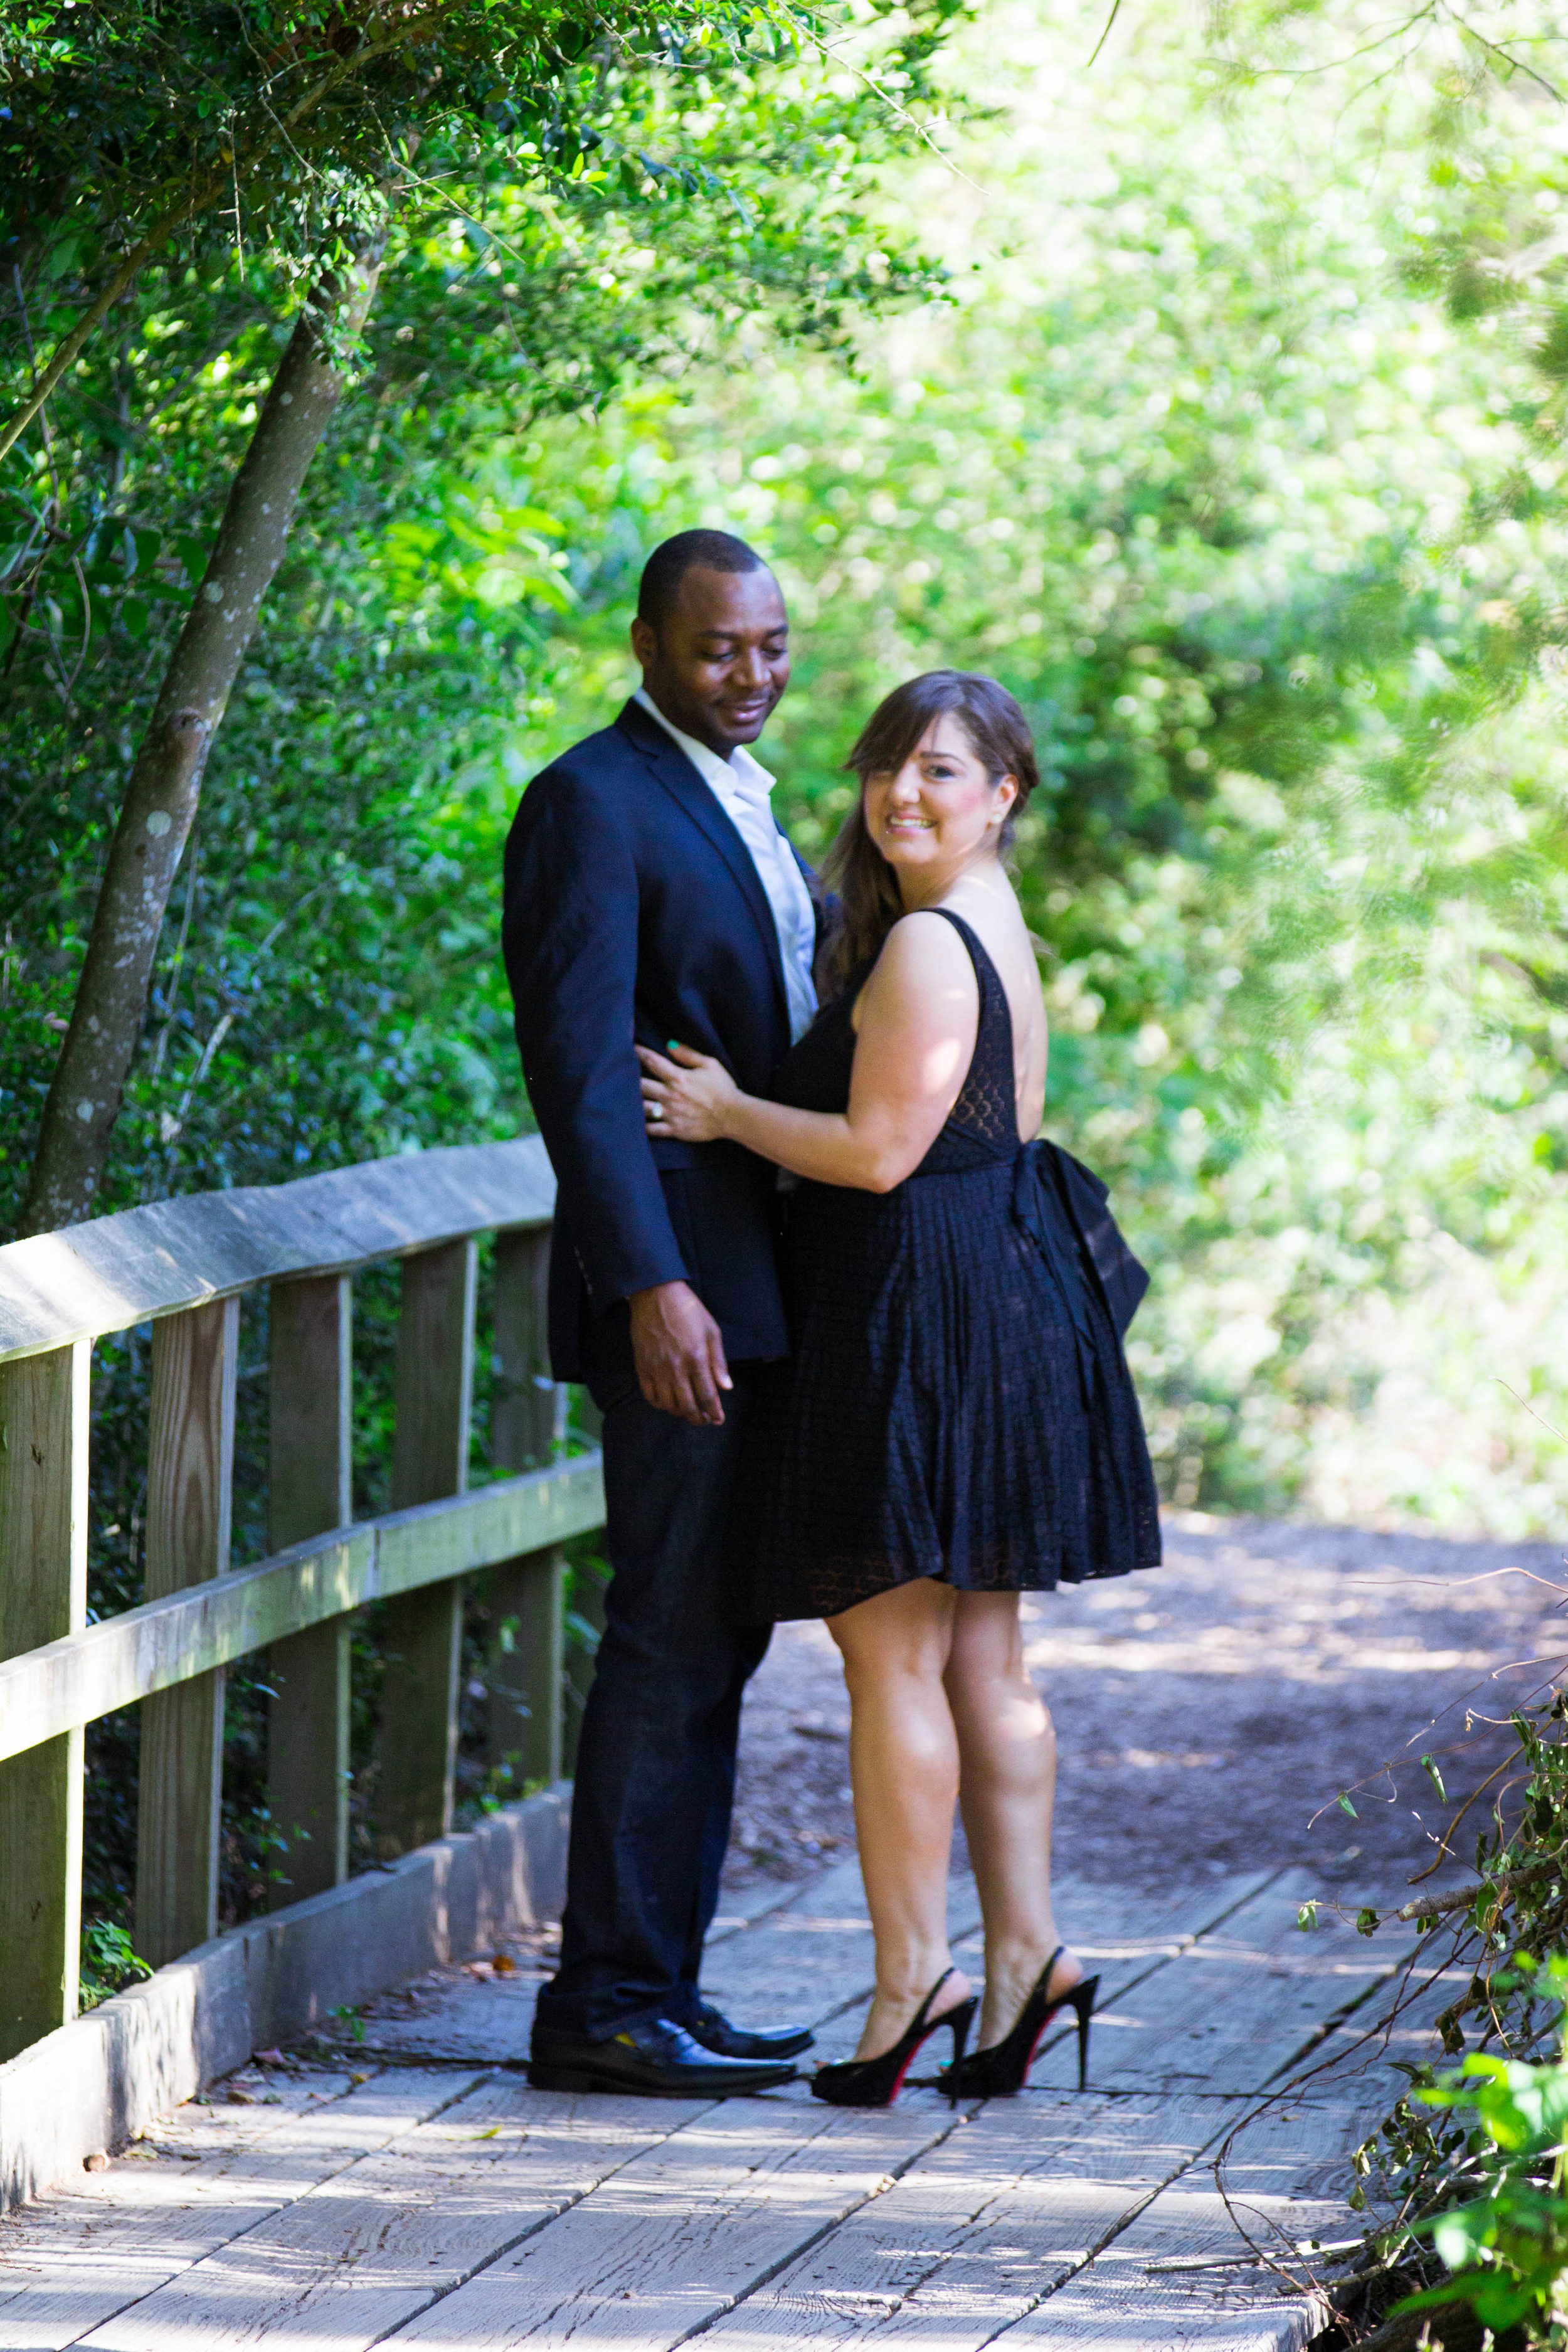 Candid engagement photography in central florida